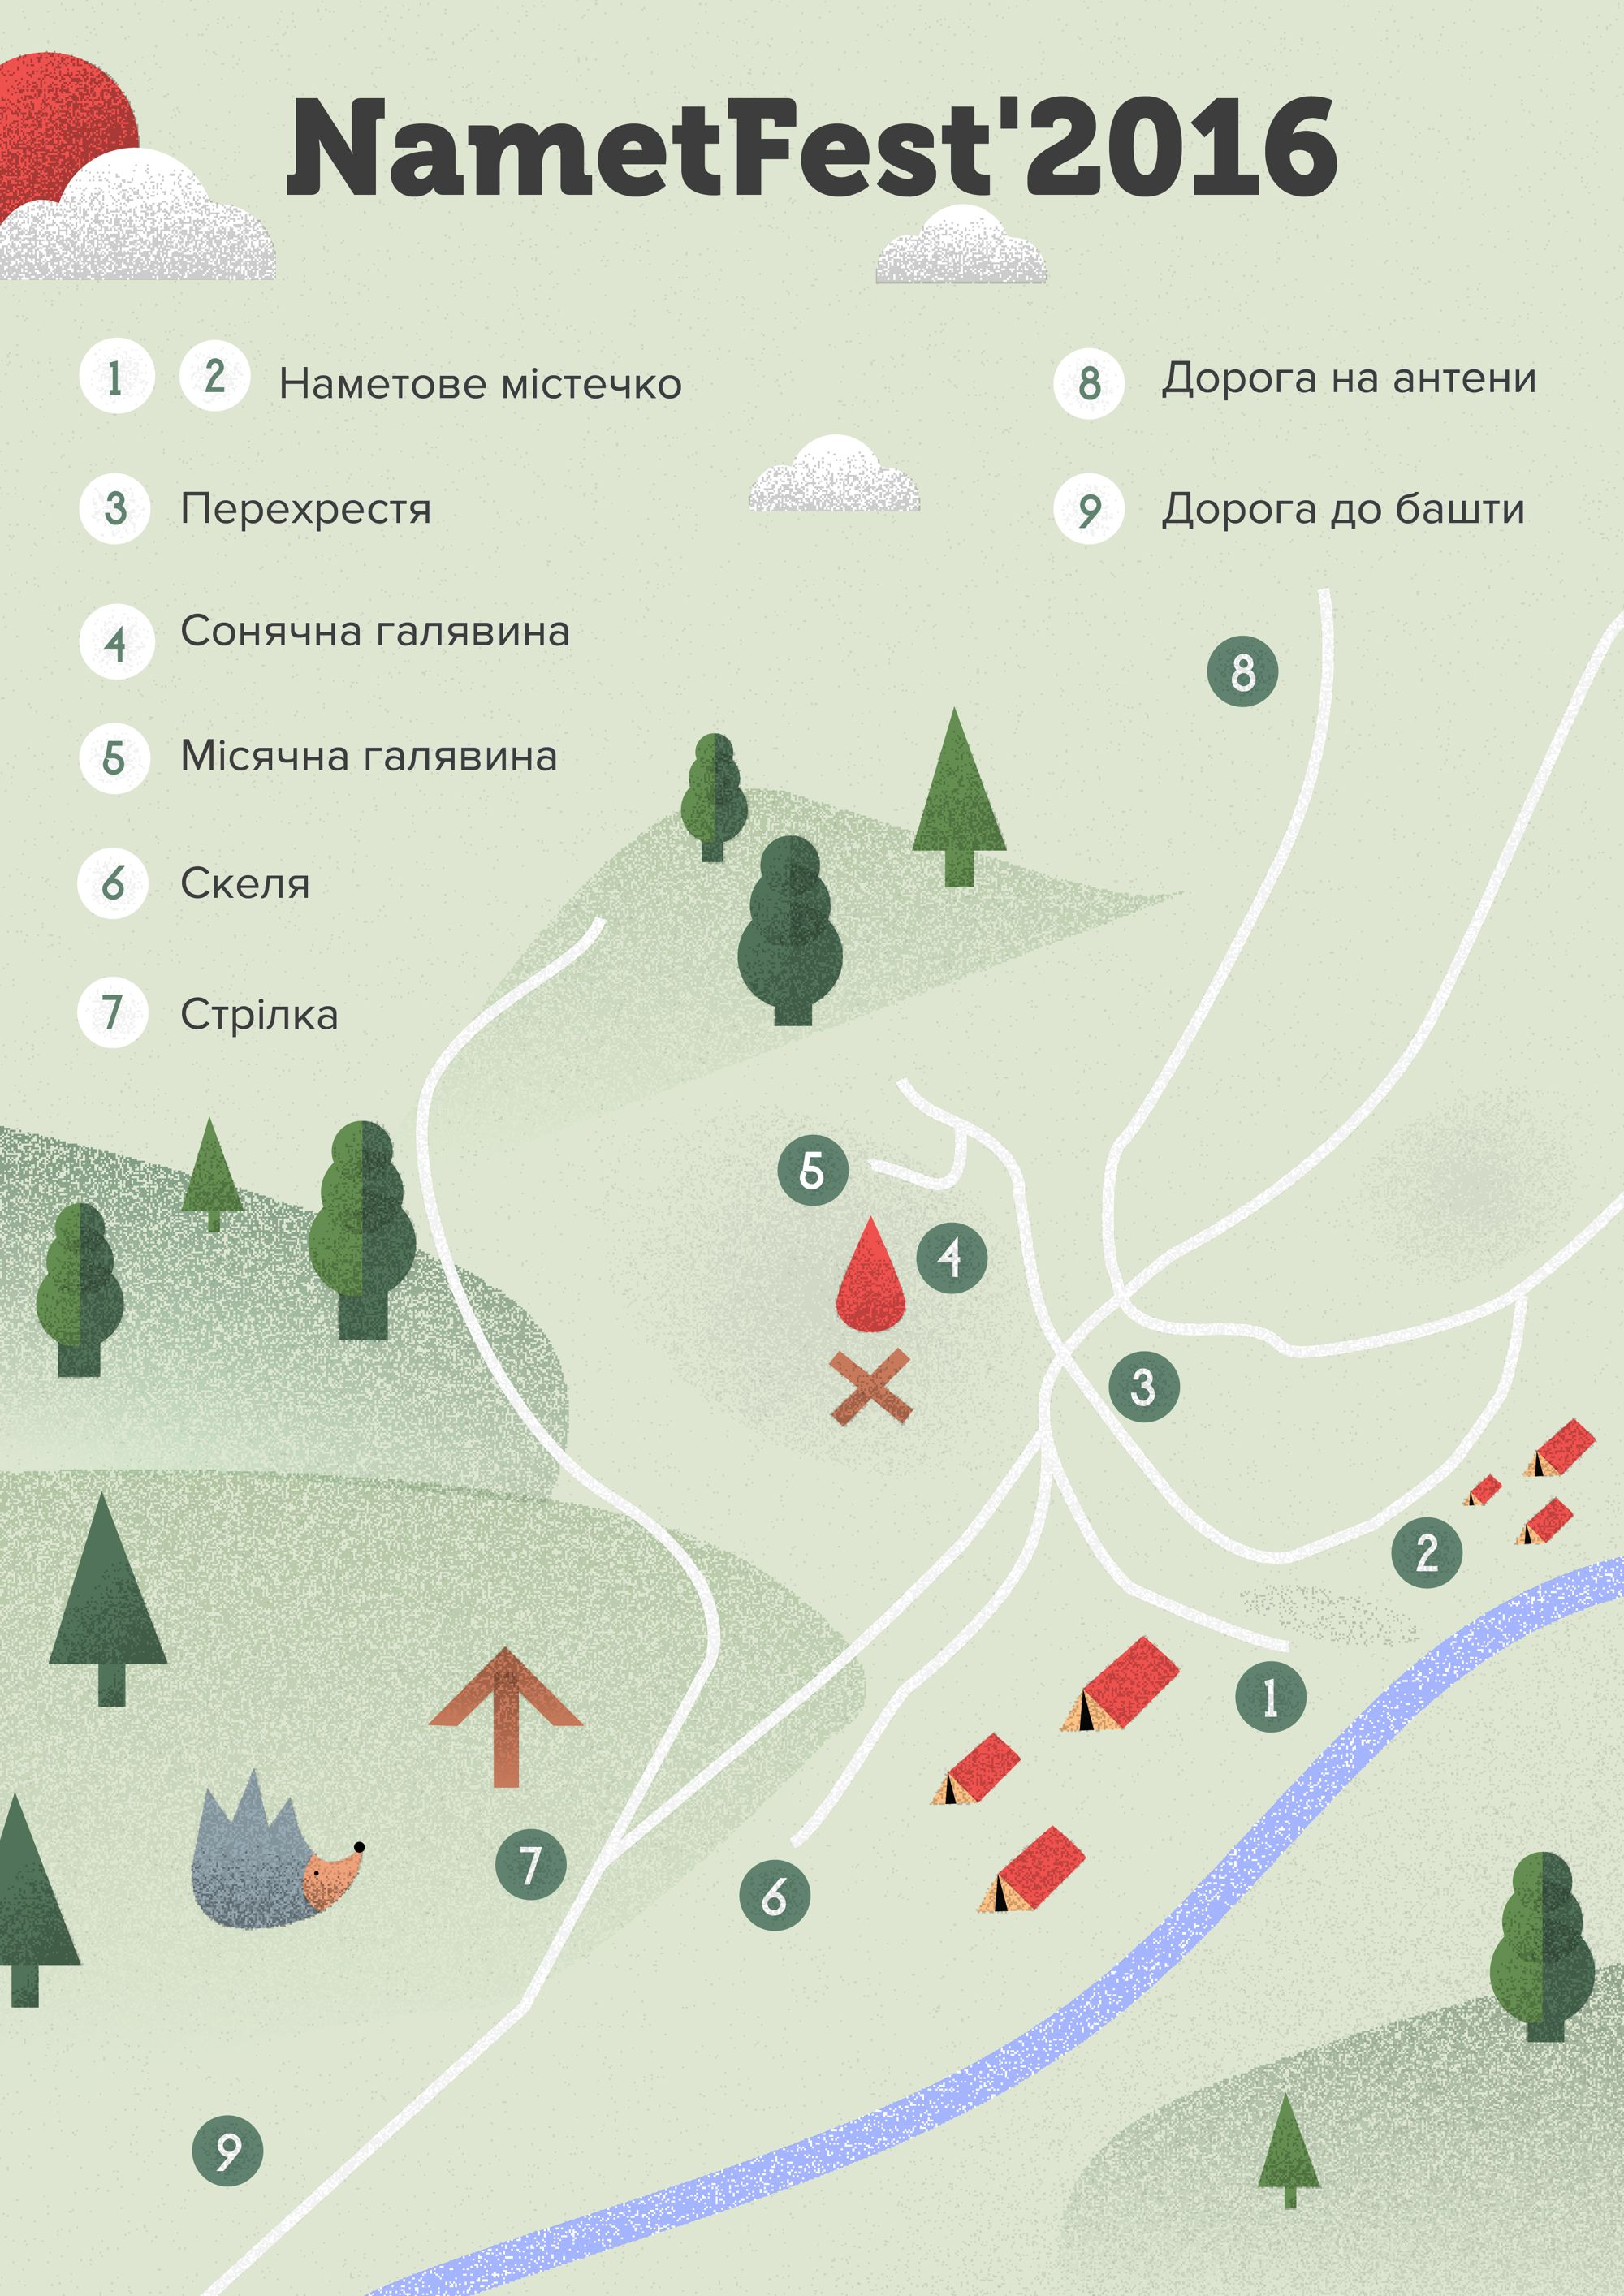 карта фестиваля наметфест map nametfest 2016